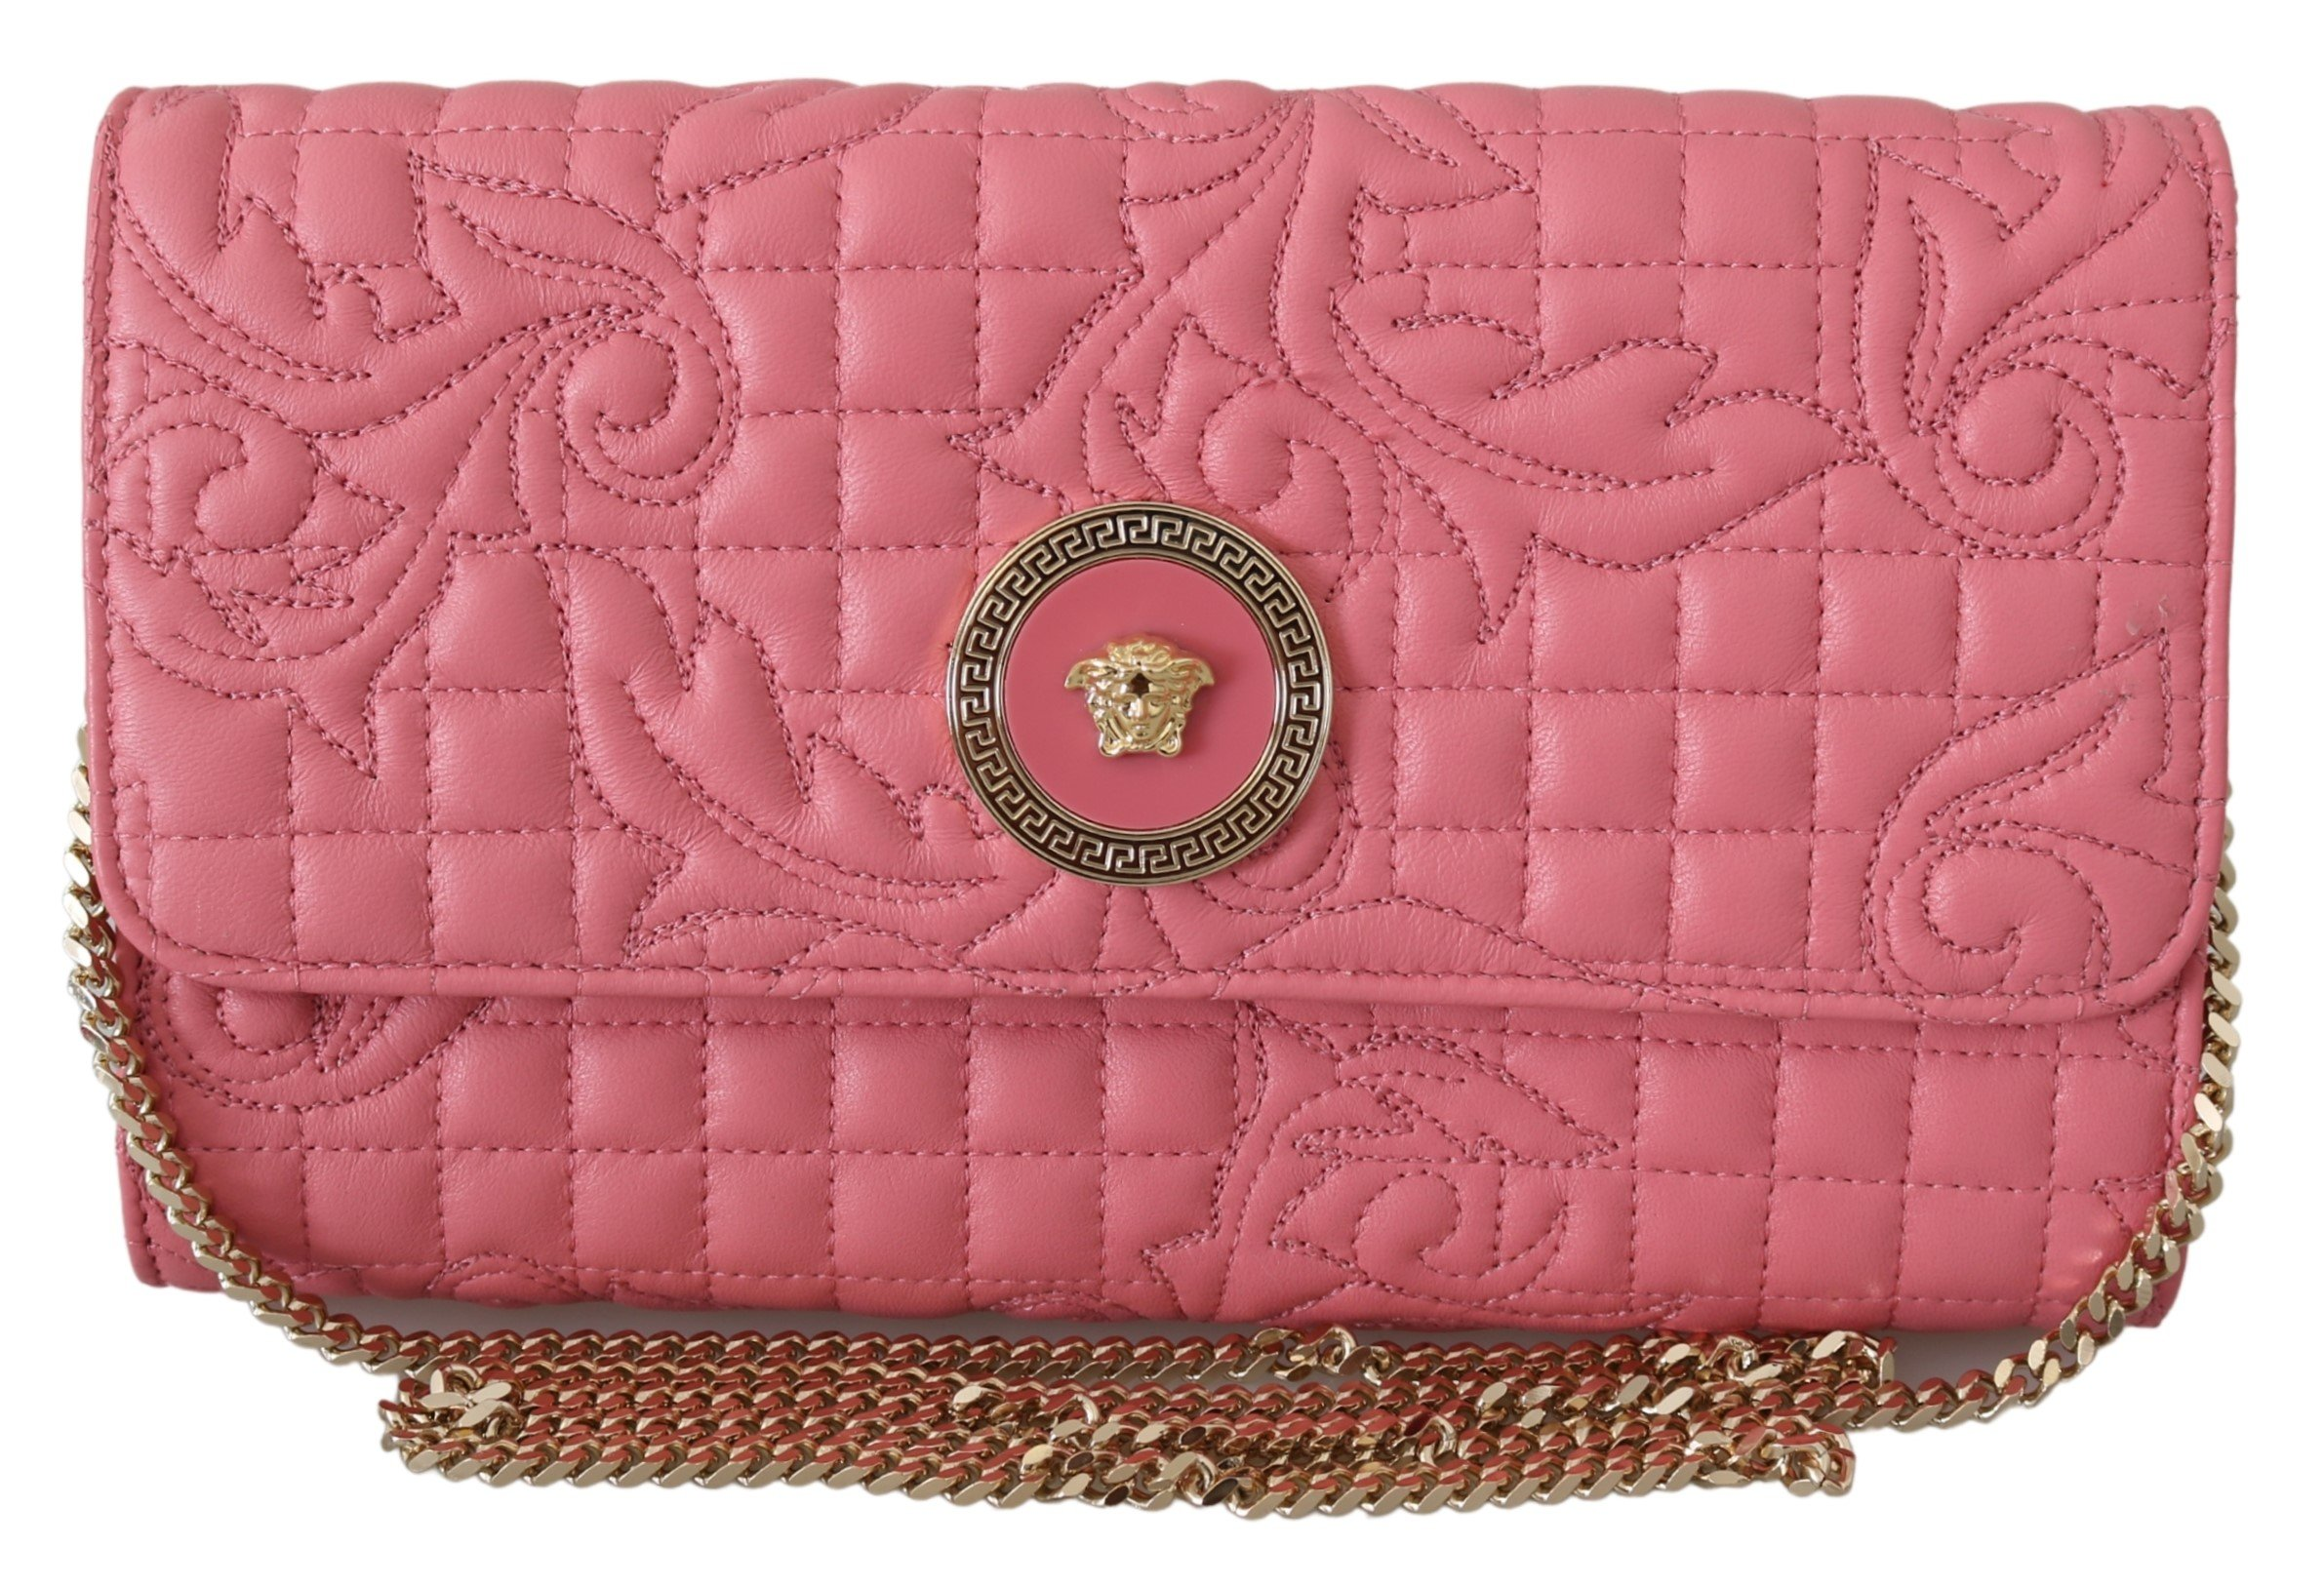 Versace Women's Quilted Nappa Leather Handbag Pink 8053850414079